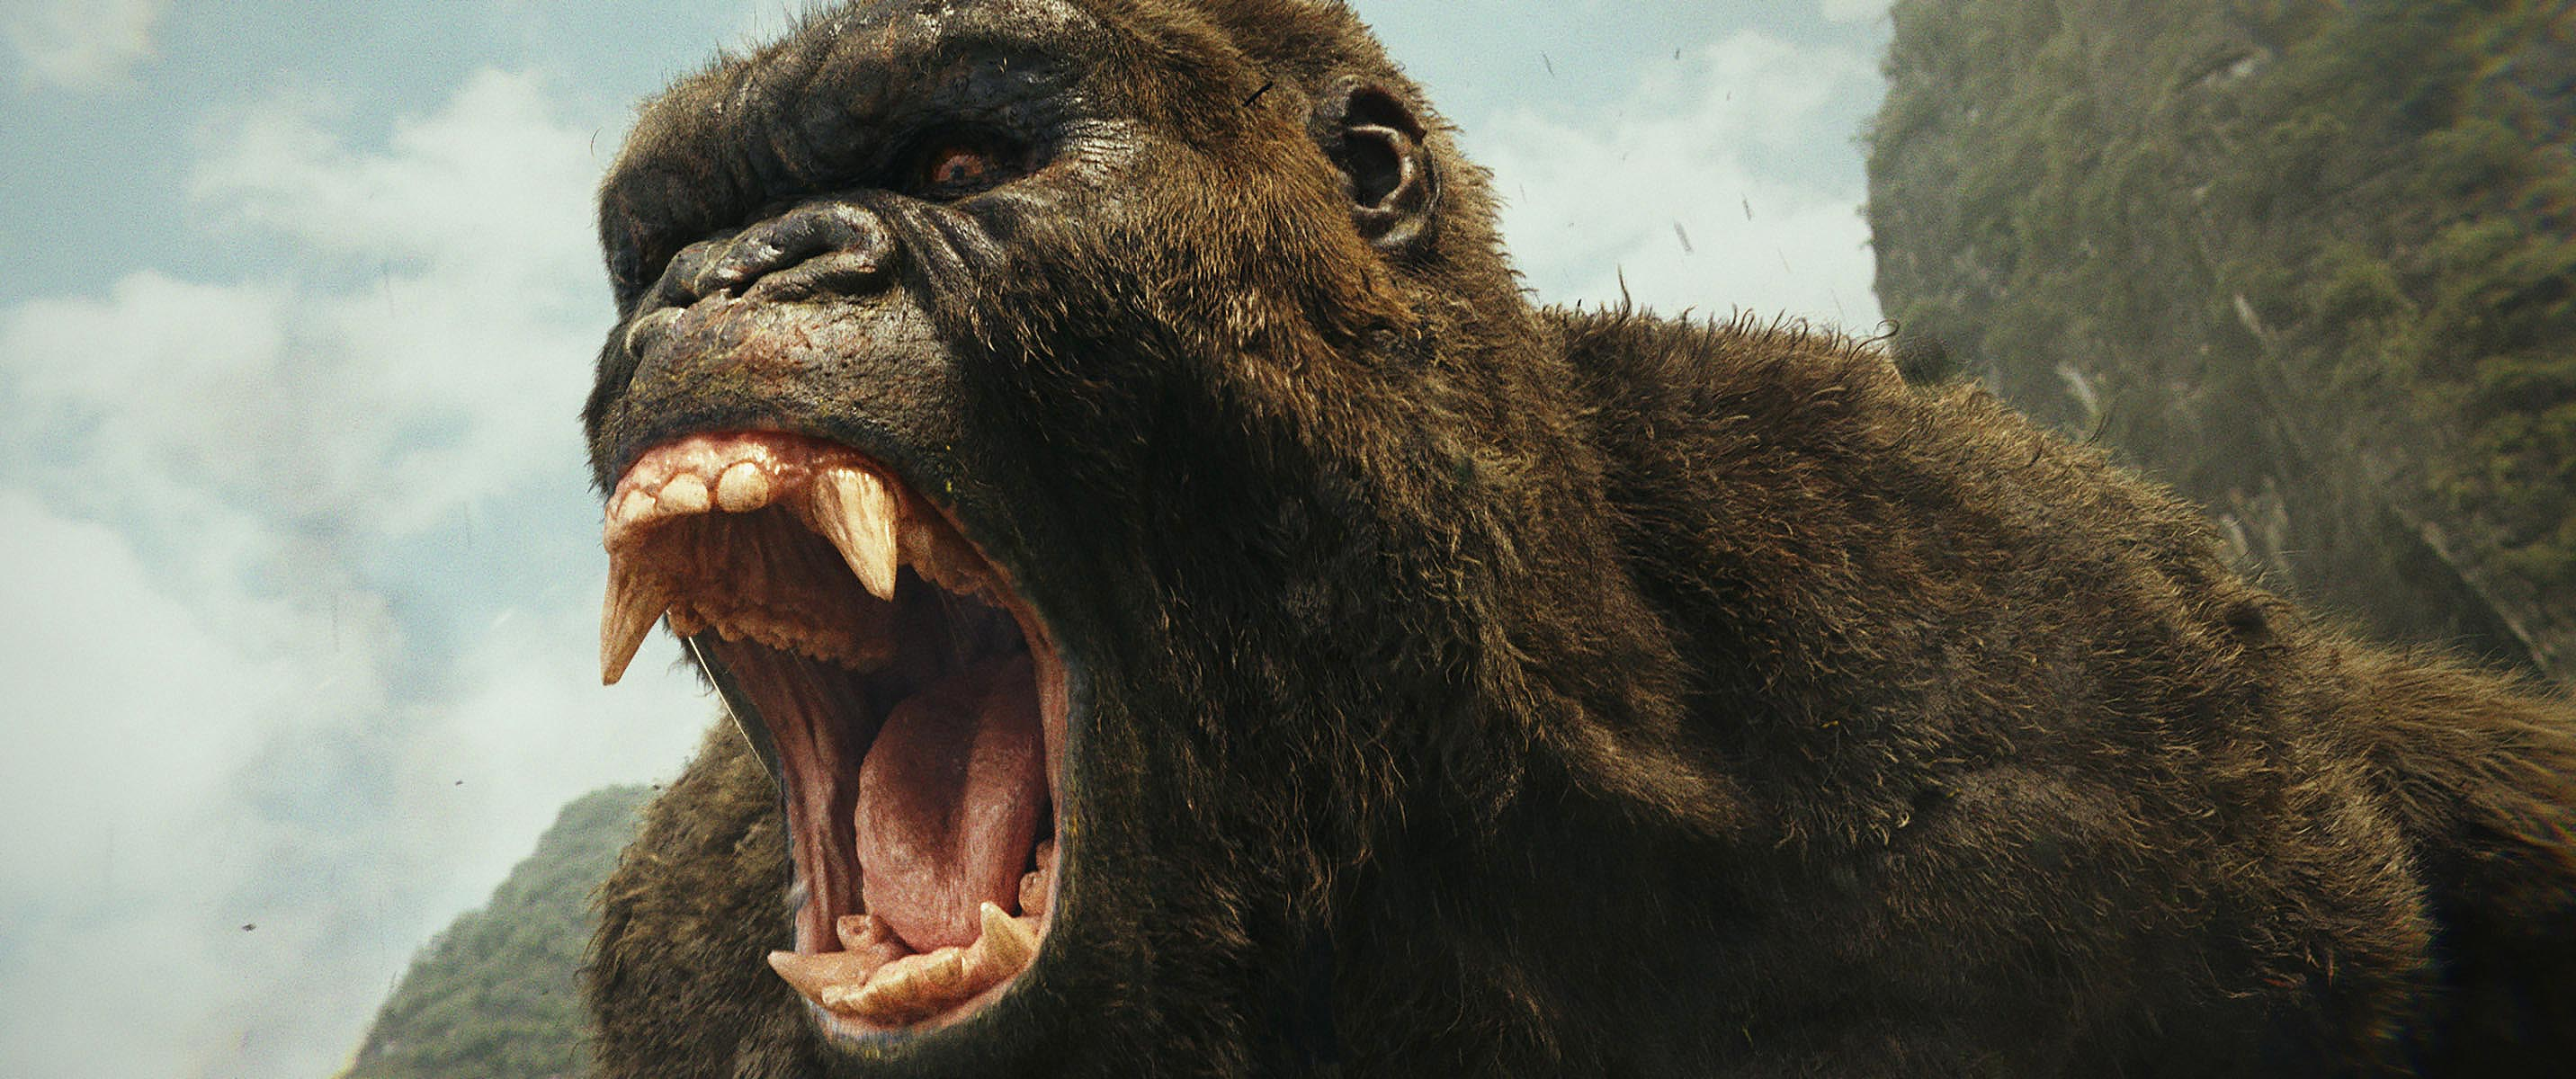 Critique Film Skull Island